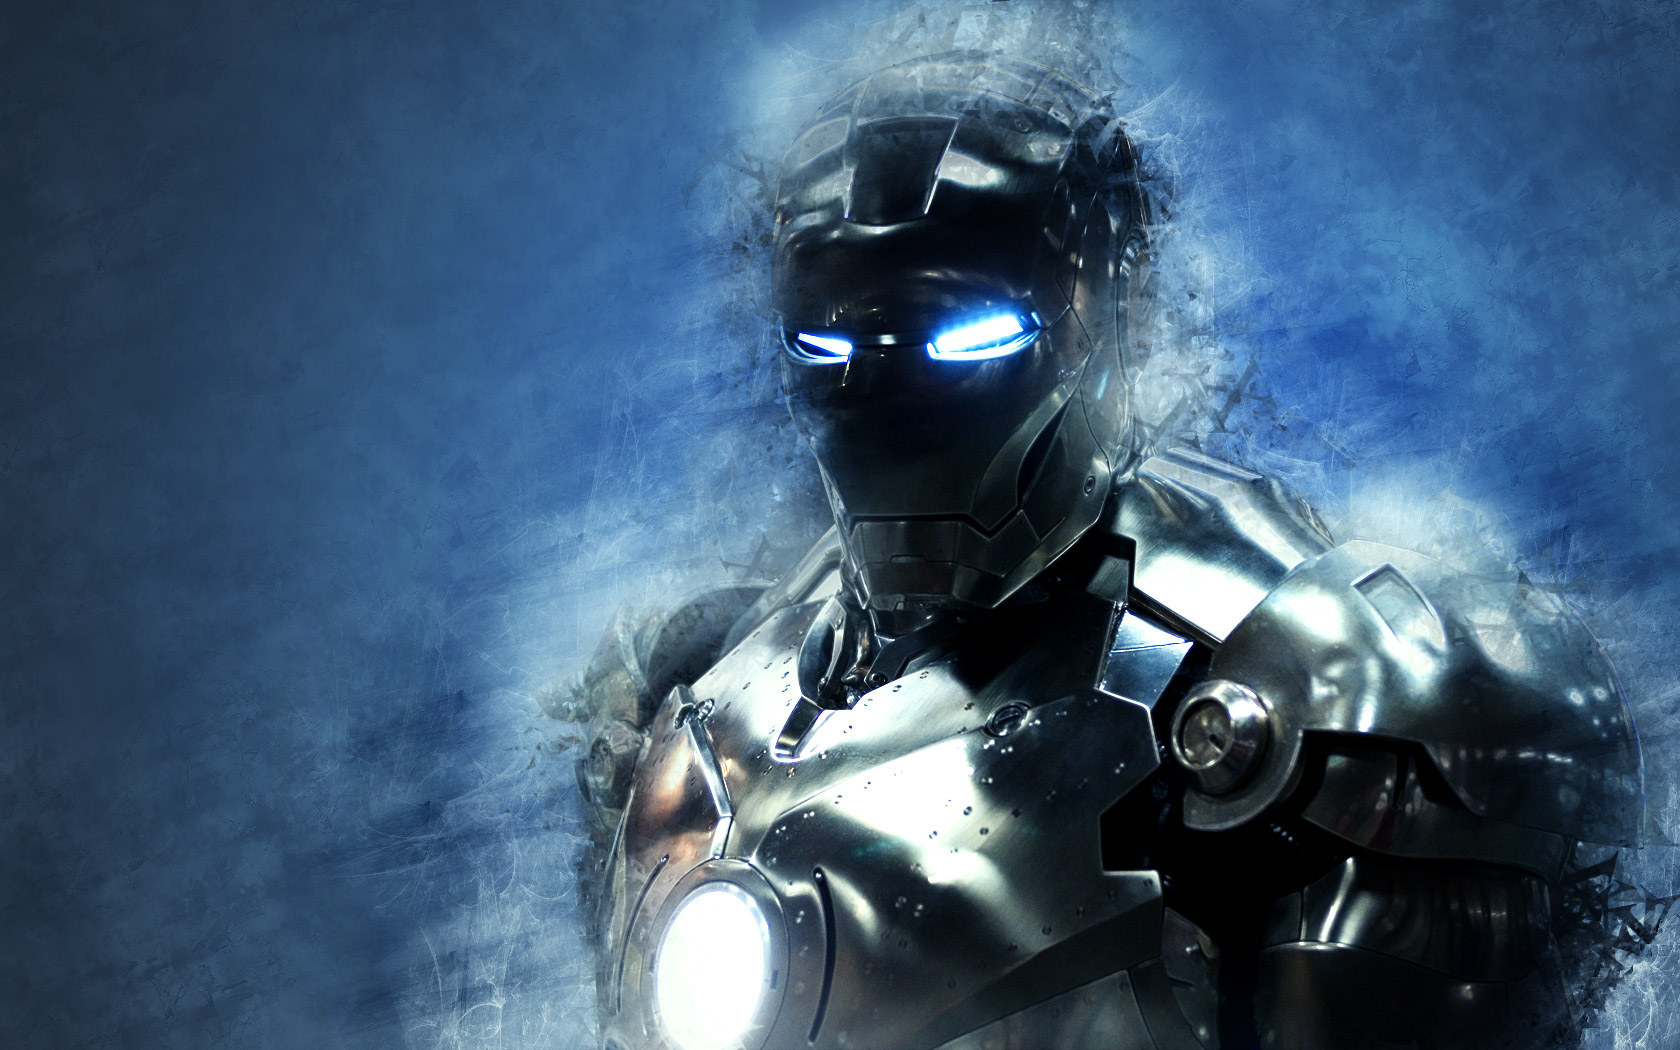 HD wallpaper Outstanding Ironman wallpaper The best Ironman wallpaper 1680x1050